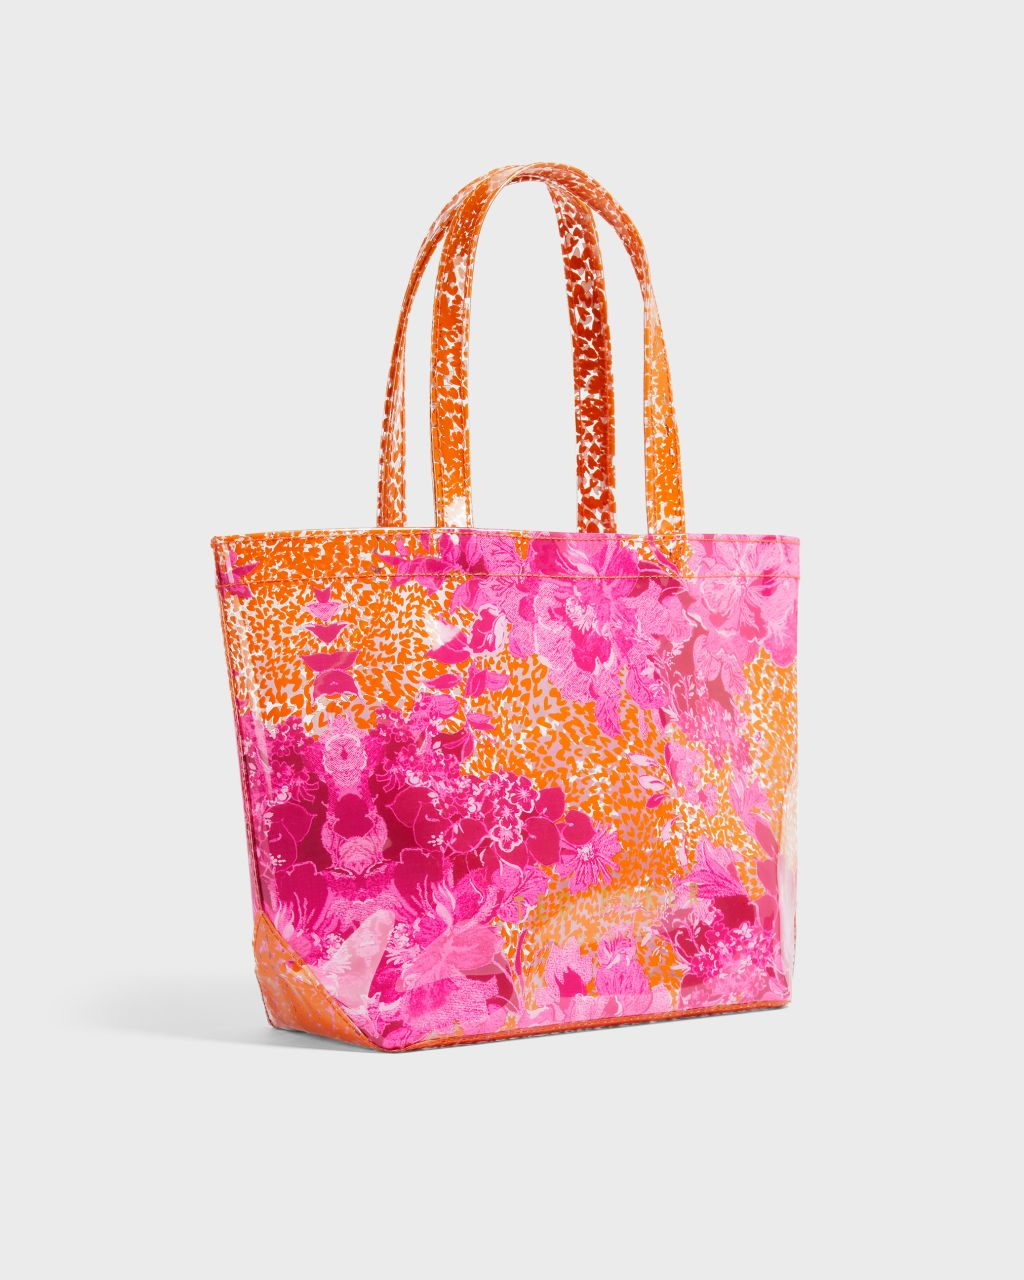 TED BAKER Metropolis Small Icon   TED BAKER SALE